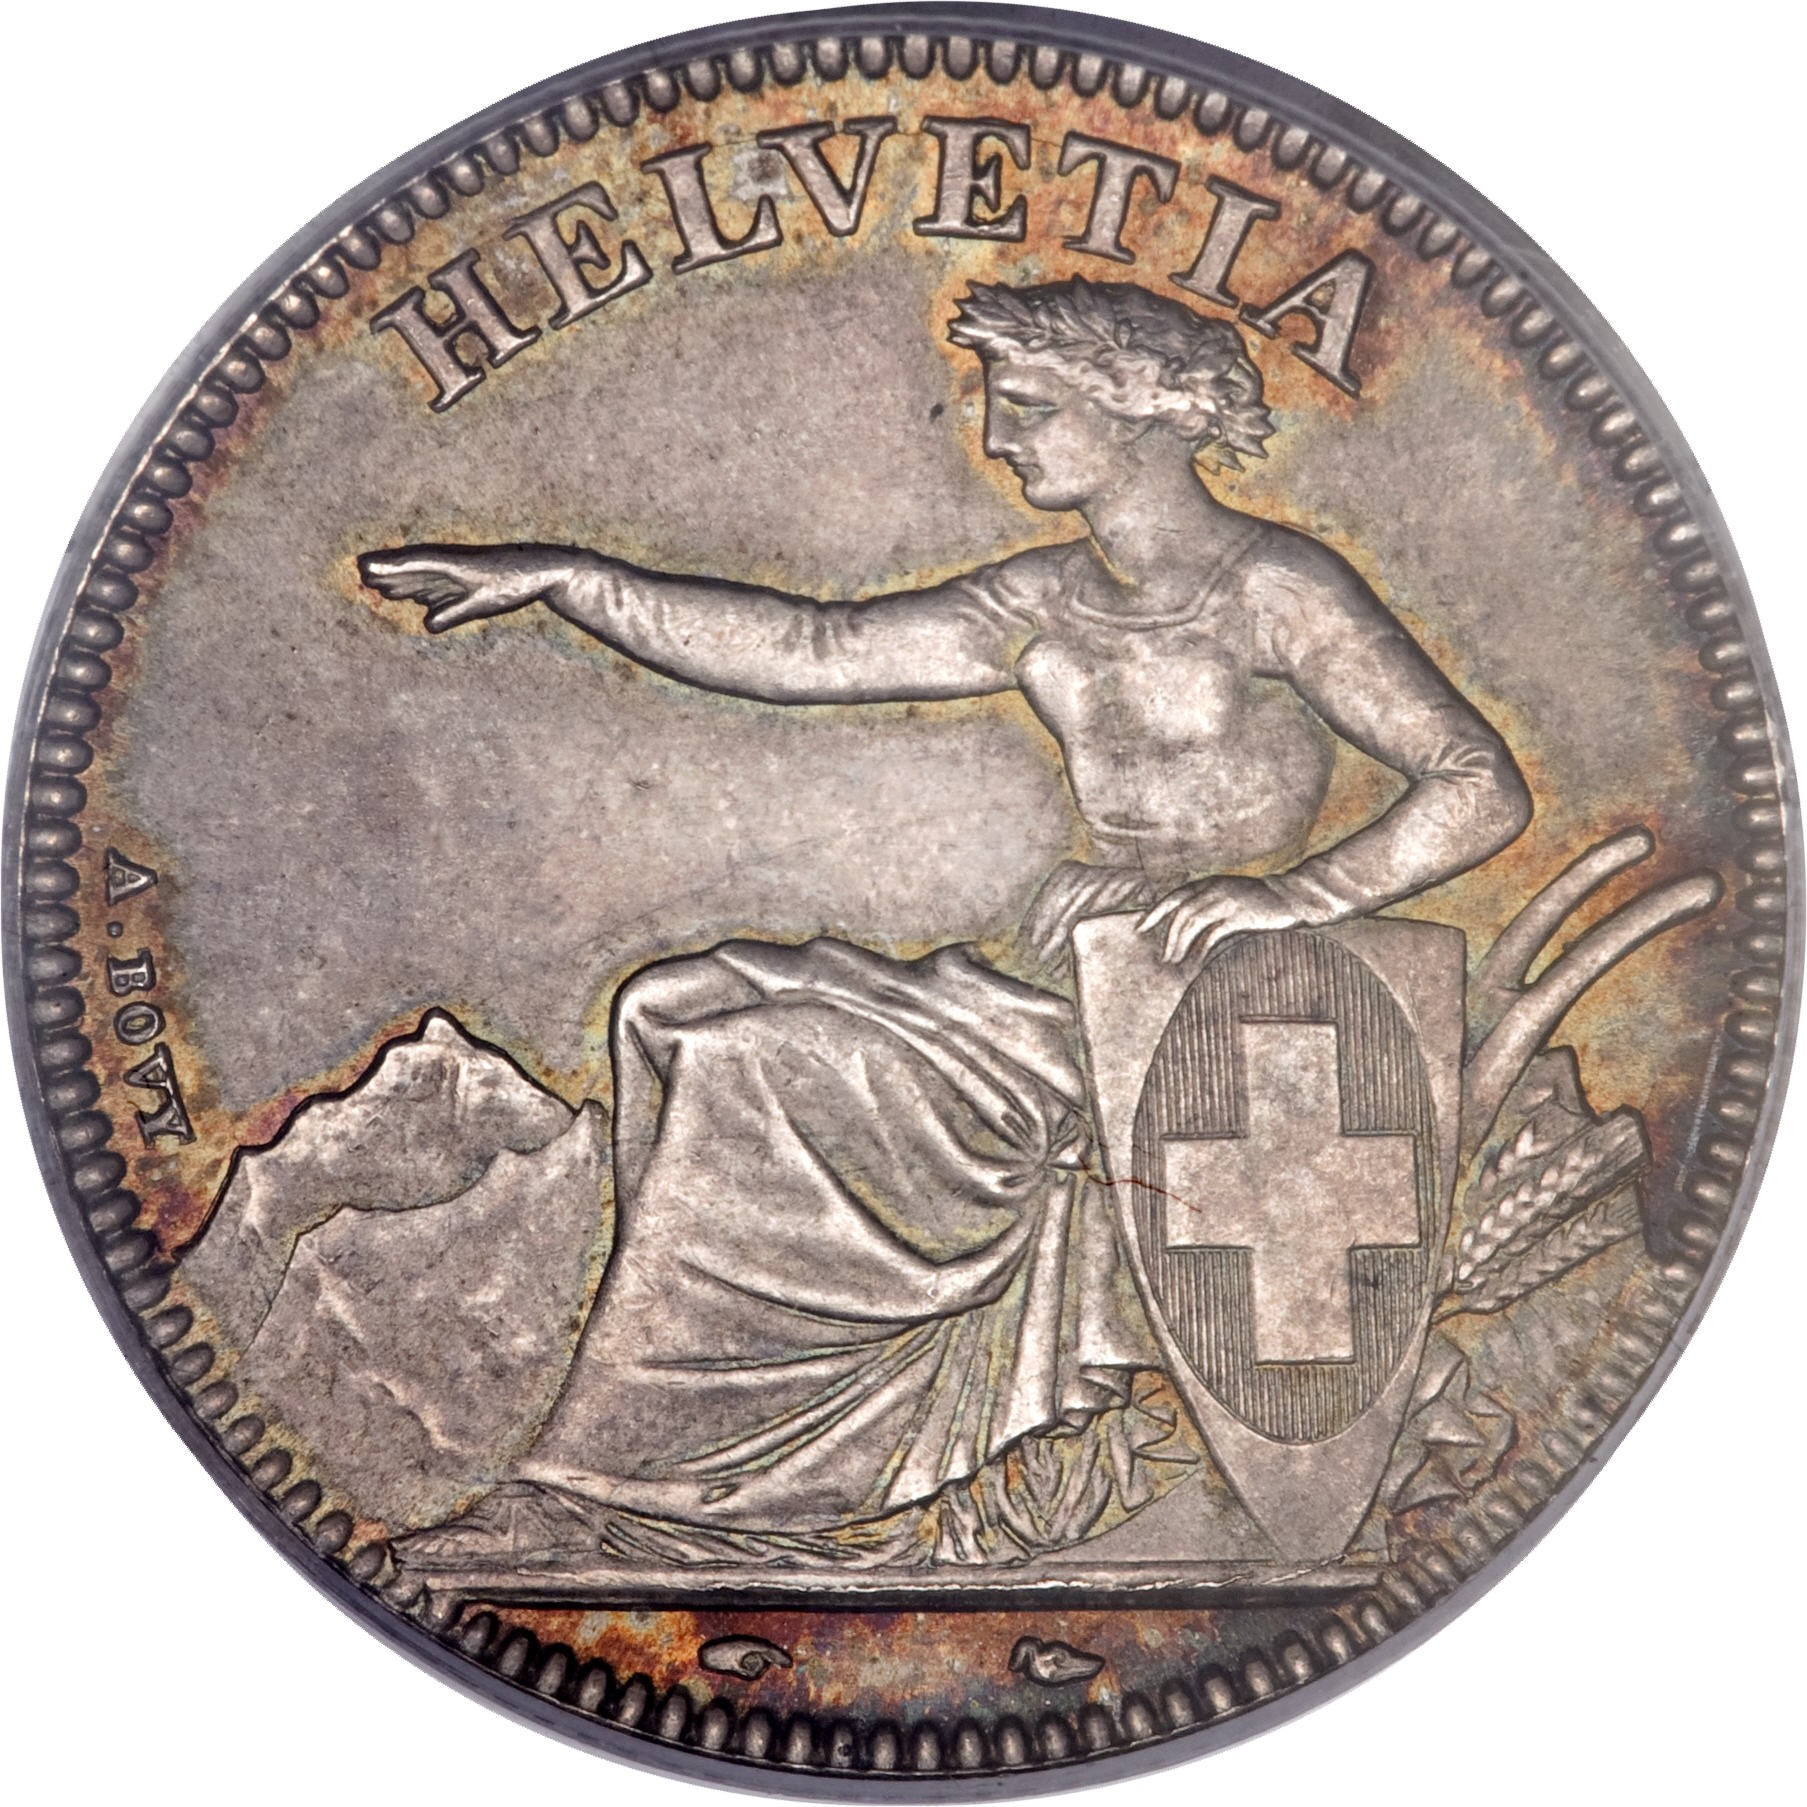 Switzerland 2 Francs (1850-1857)